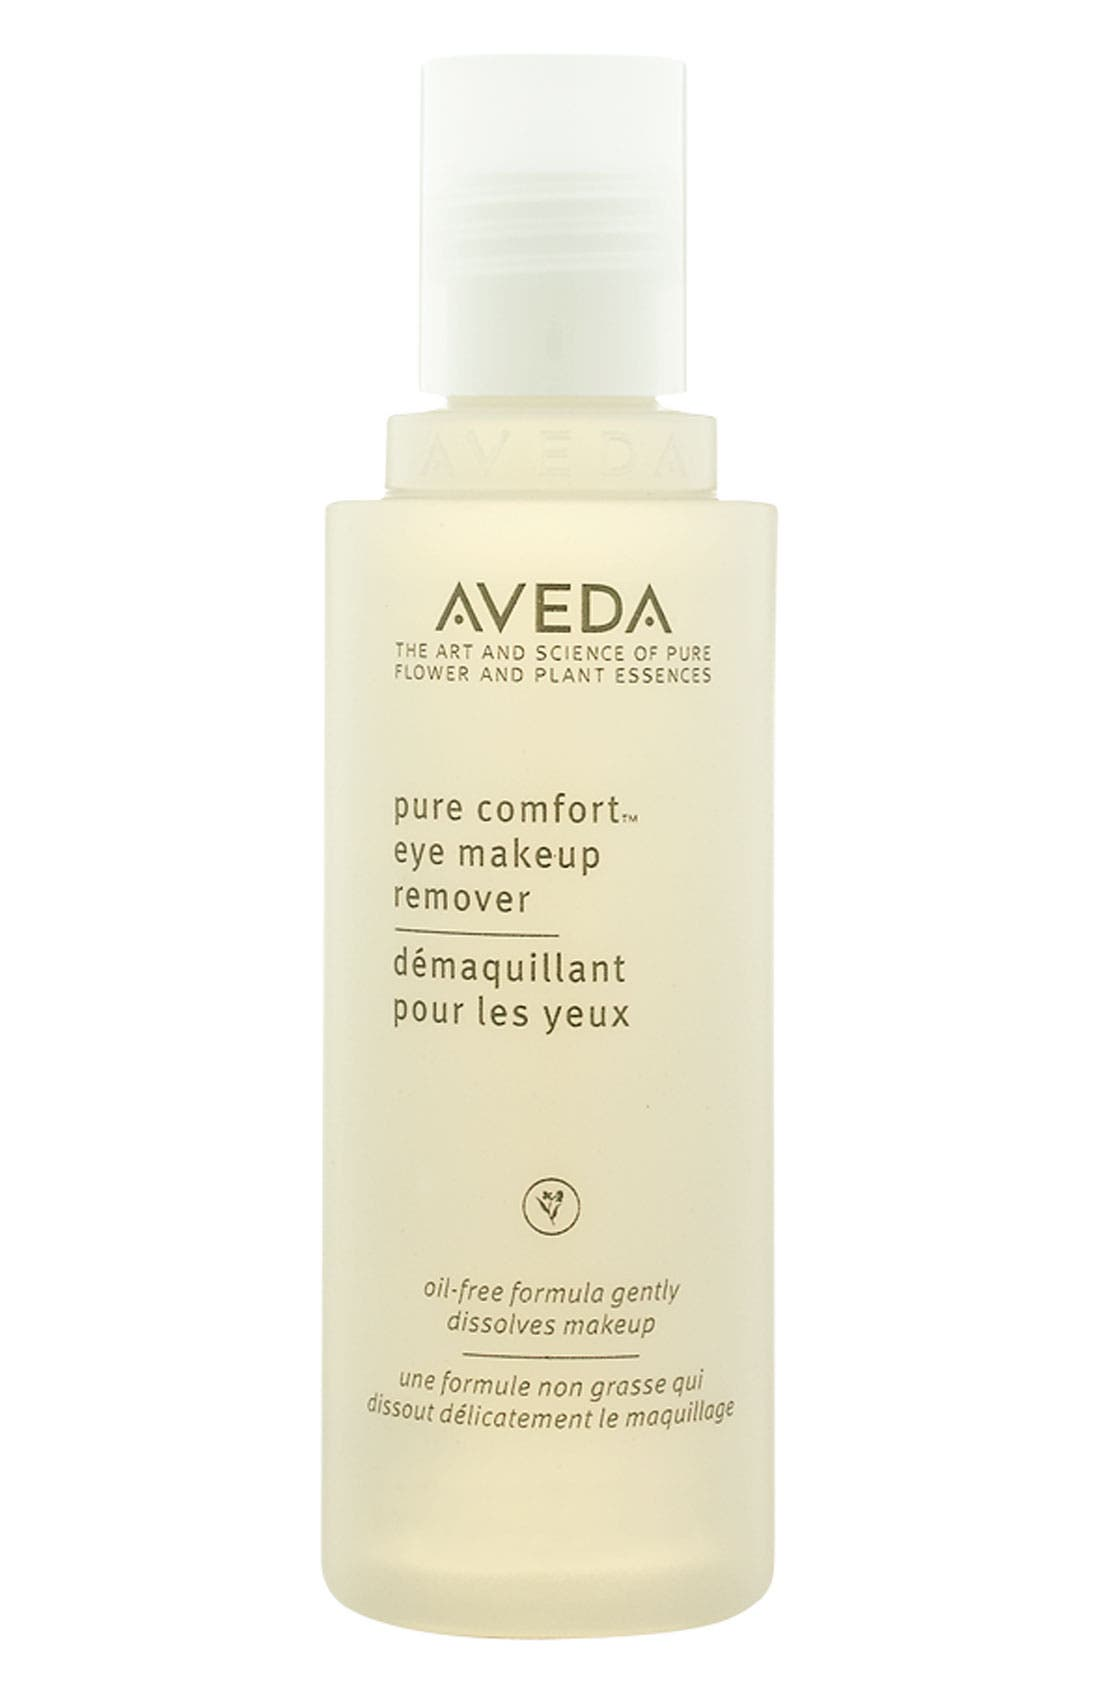 Aveda 'pure comfort™' Eye Makeup Remover